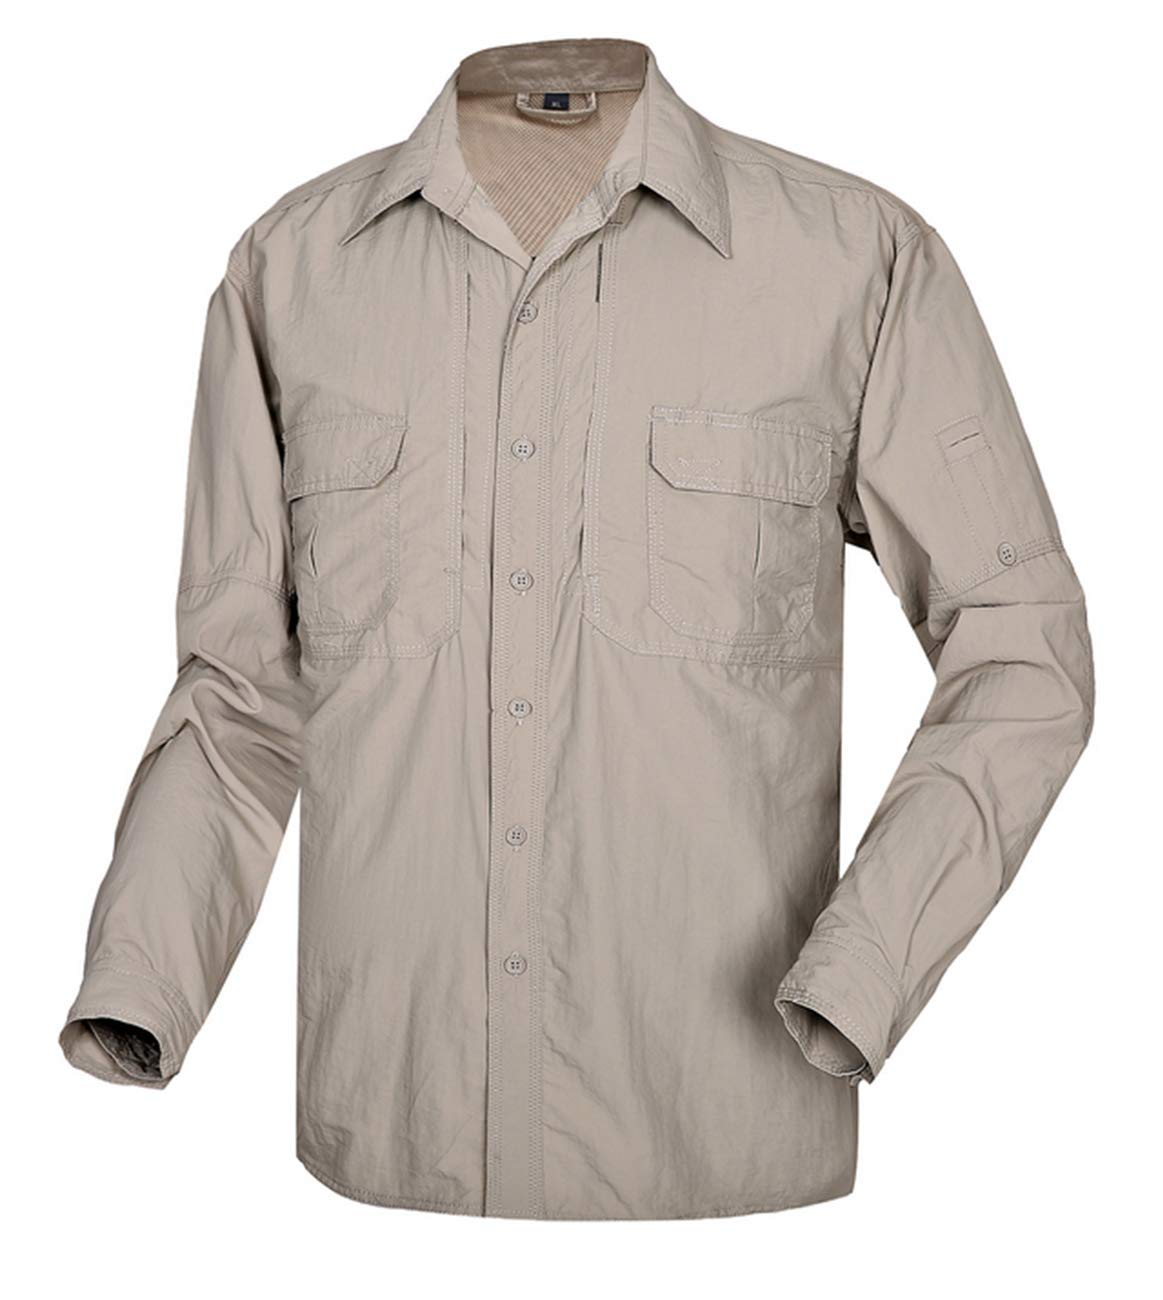 APRAW Men's Quick Dry Travel Outdoor Shirts Waterproof Long Roll Sleeves UV Protection Hiking Fishing Camping Khaki